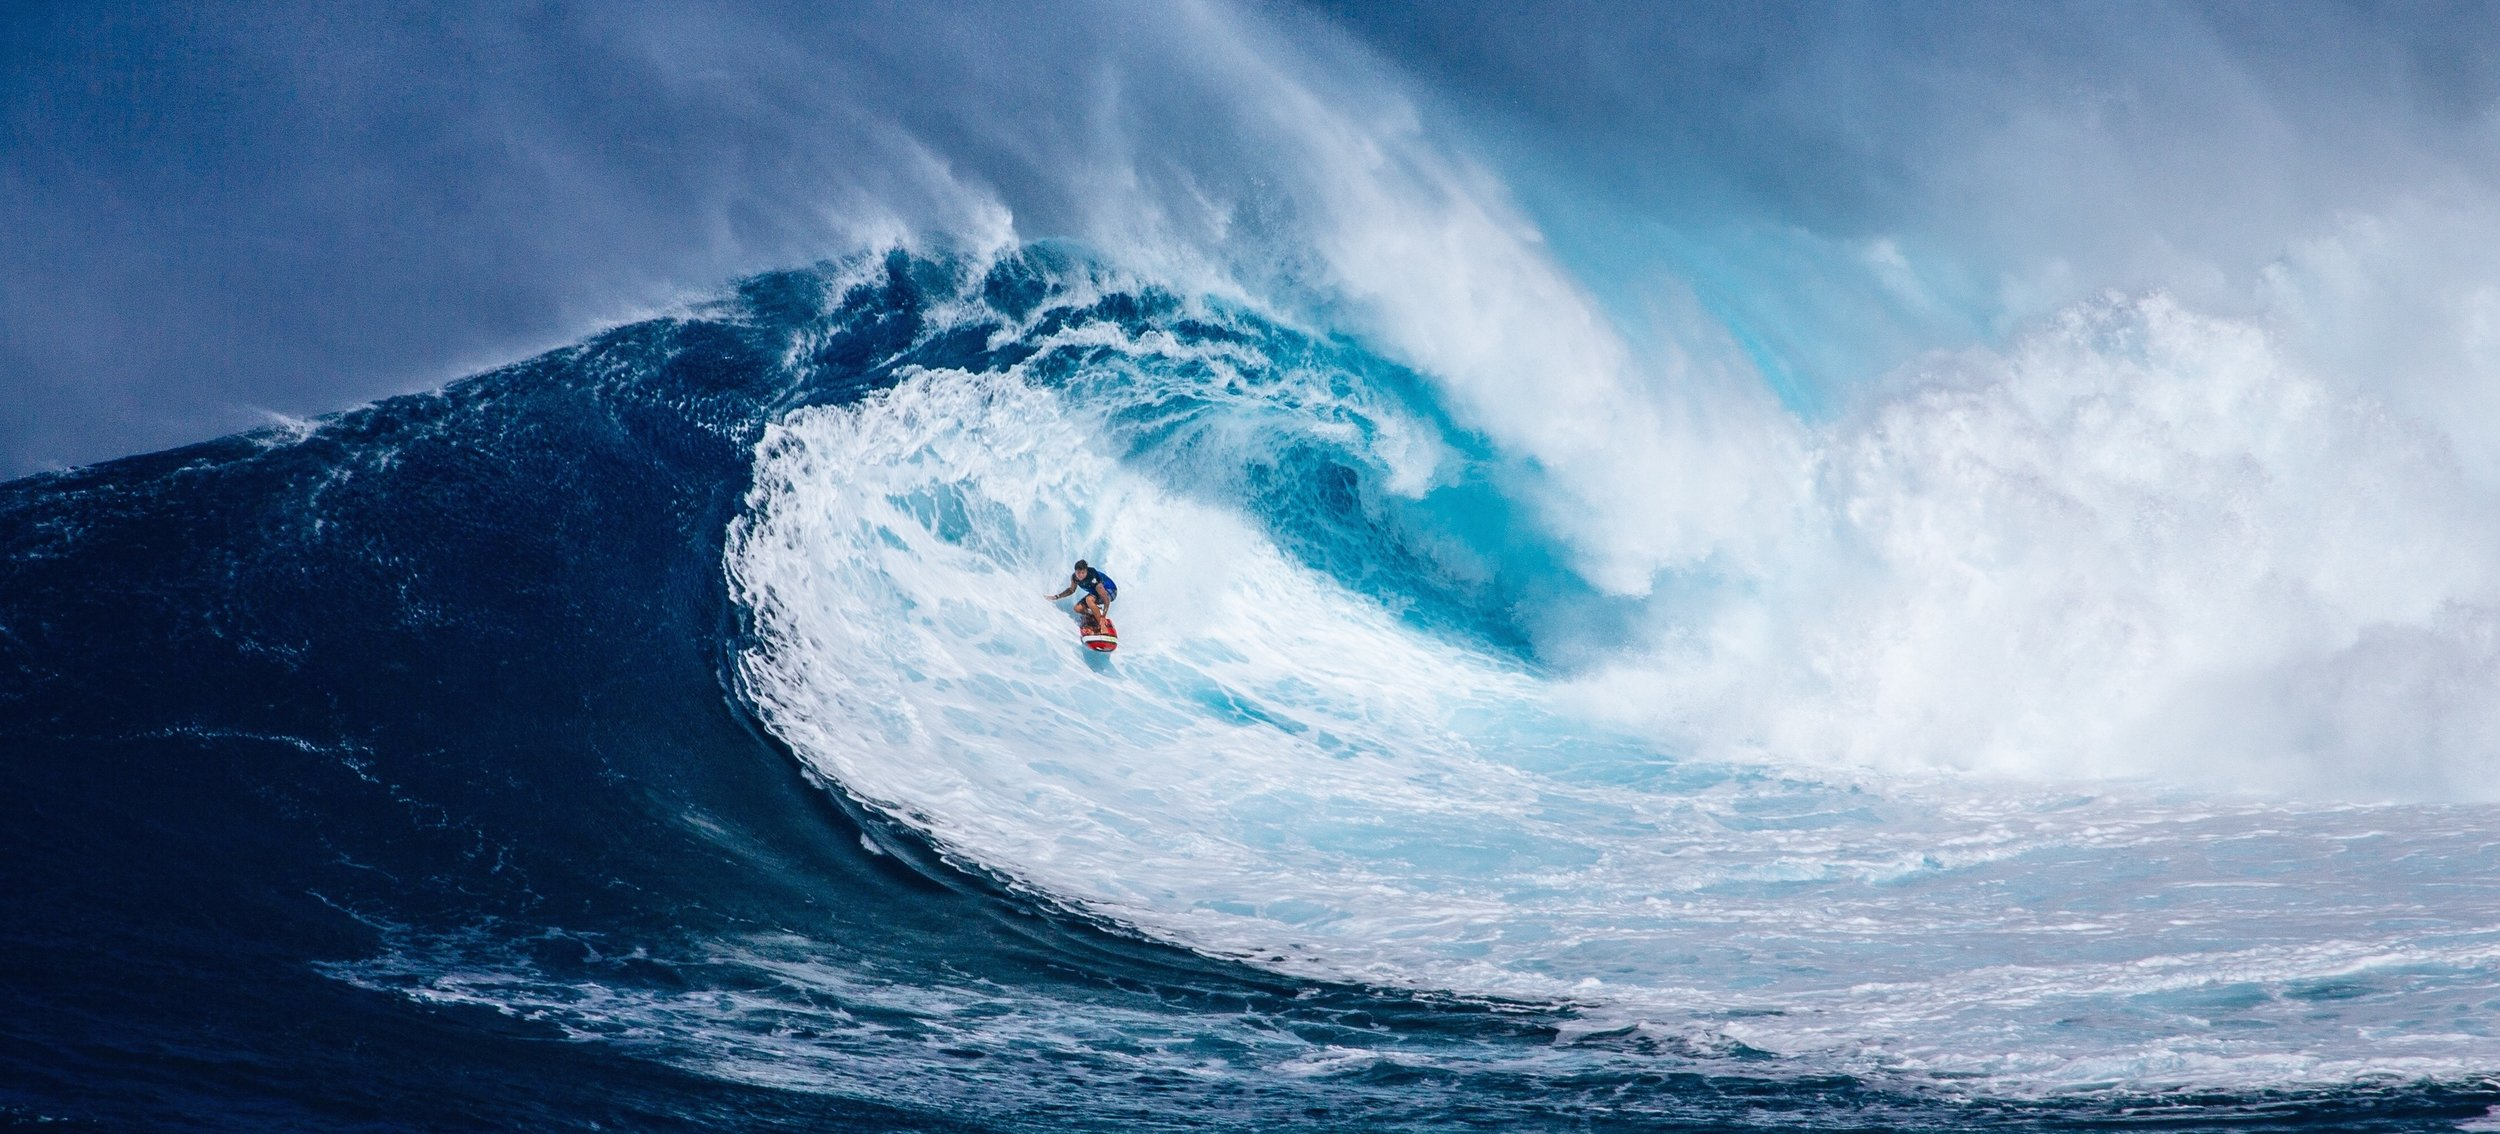 active water with surfer shortened.jpg